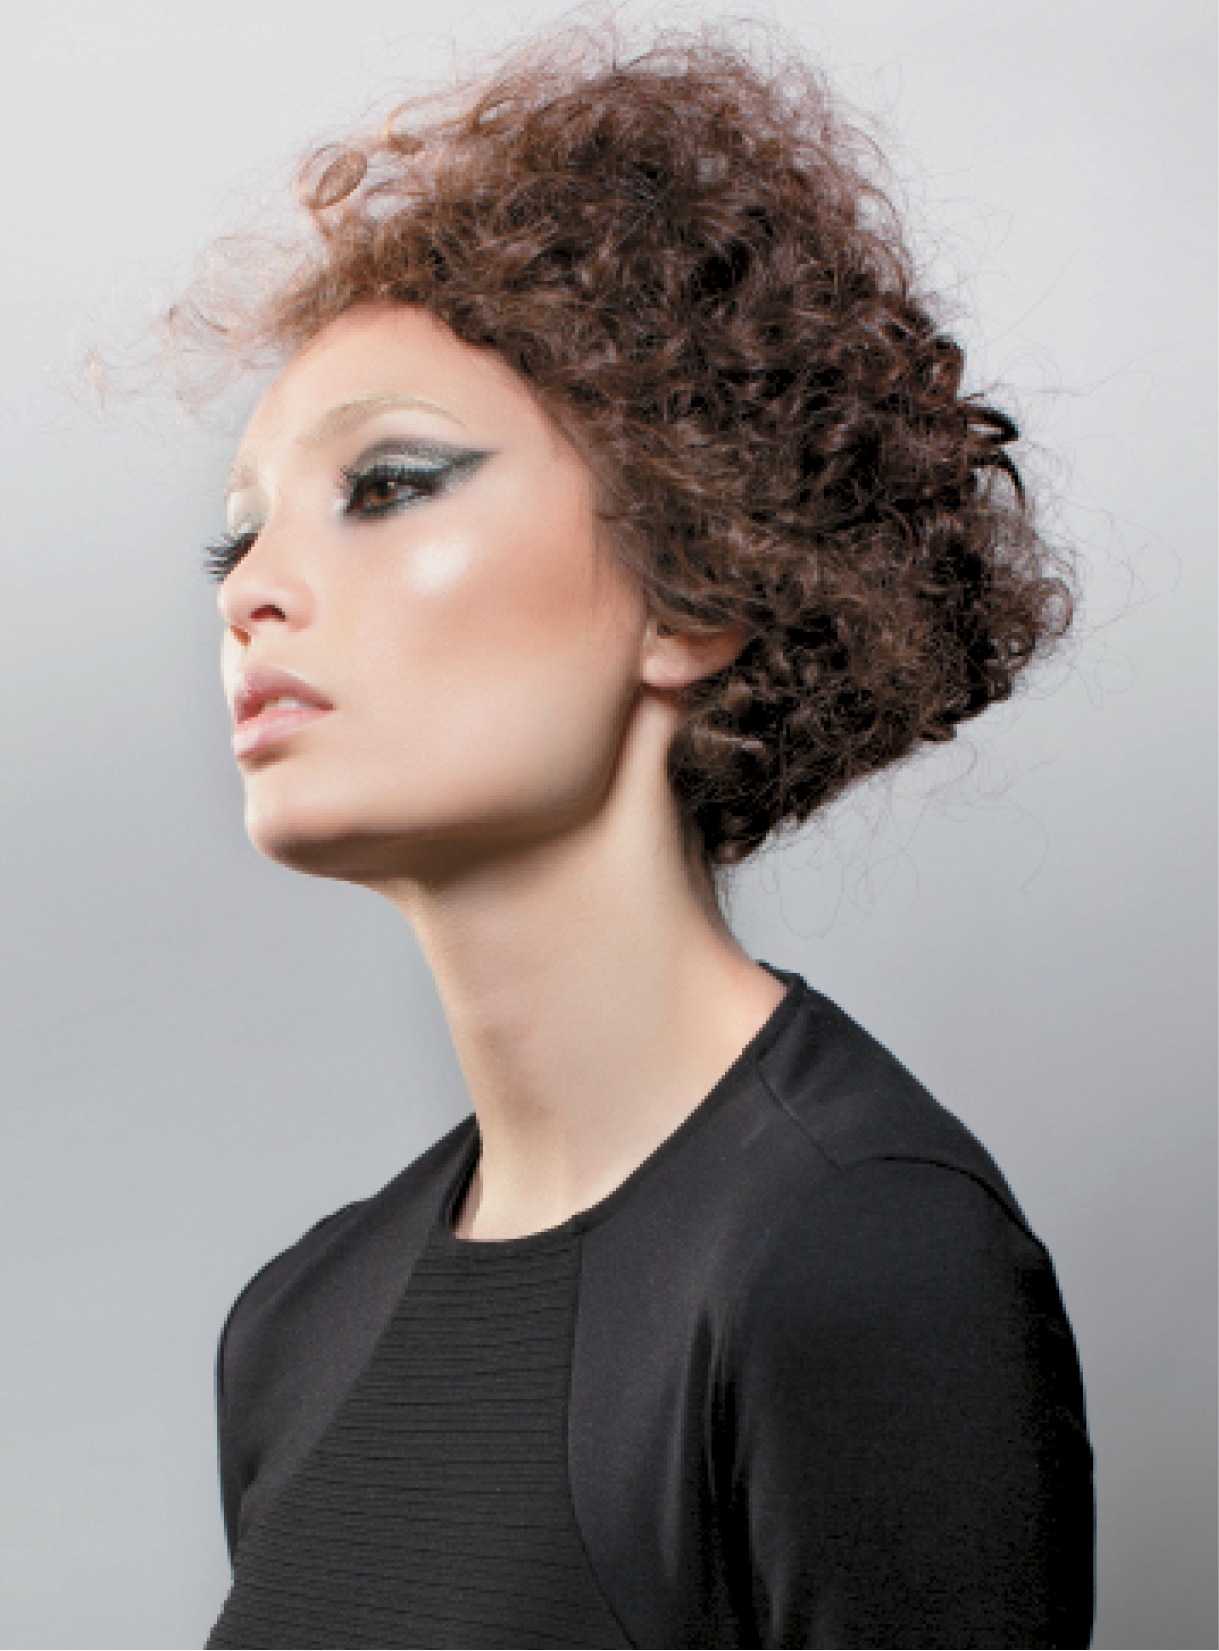 Buccio crafted this geometric square updo by separating every wave and curl without brushing them out. Once he had a full shape, he started to sculpt the hair into a square. He used Osis Session to give the hair hold and pulled out some pieces throughout the perimeter to create a solid shape.